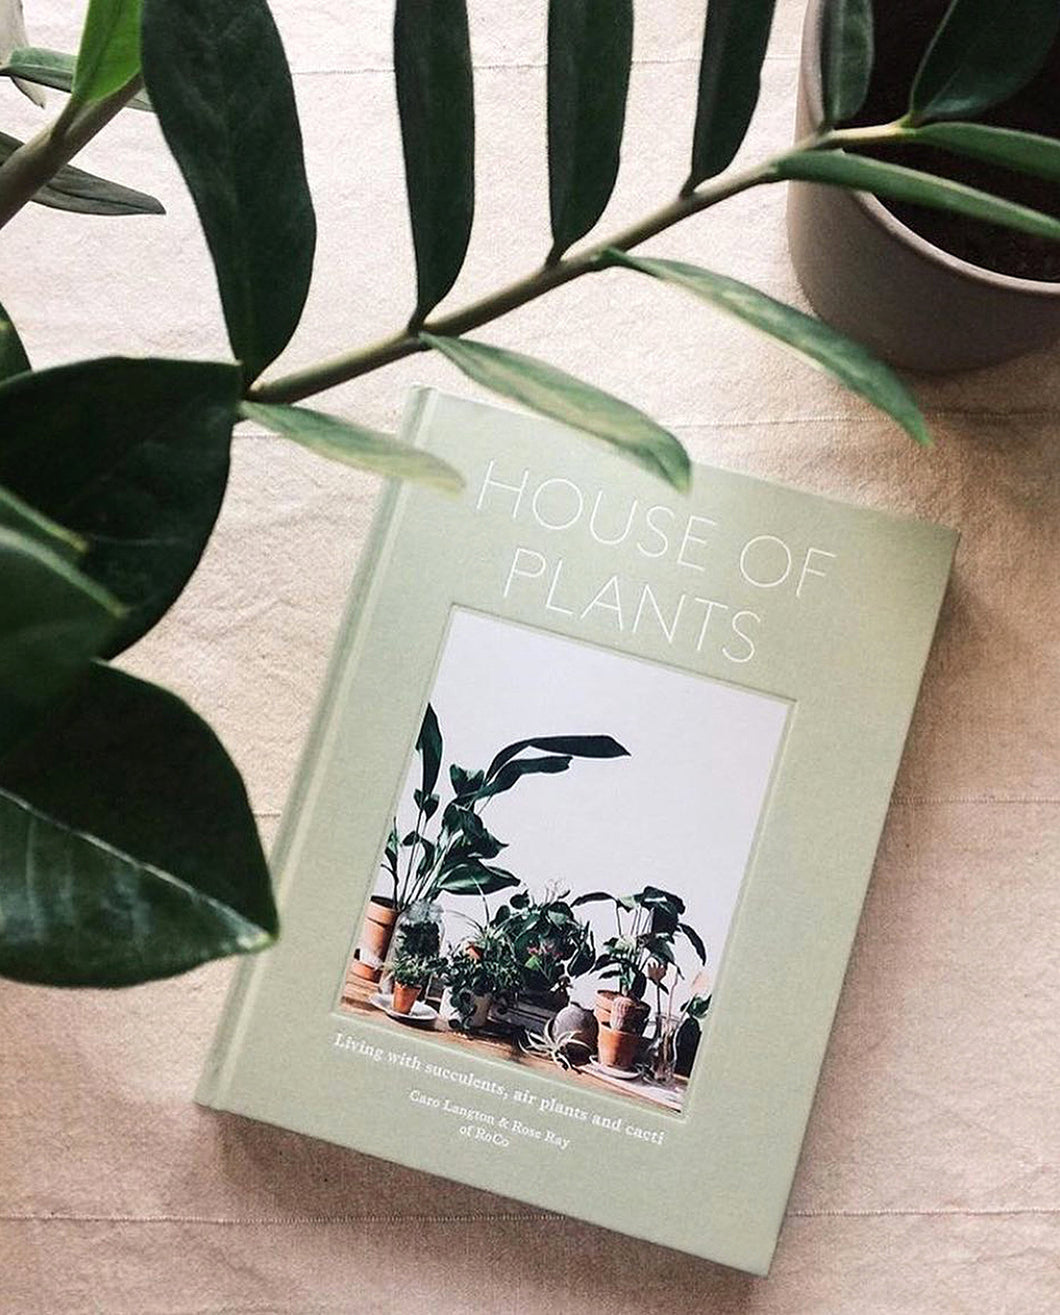 Libro House of Plants de Caro Langton y Rose Ray